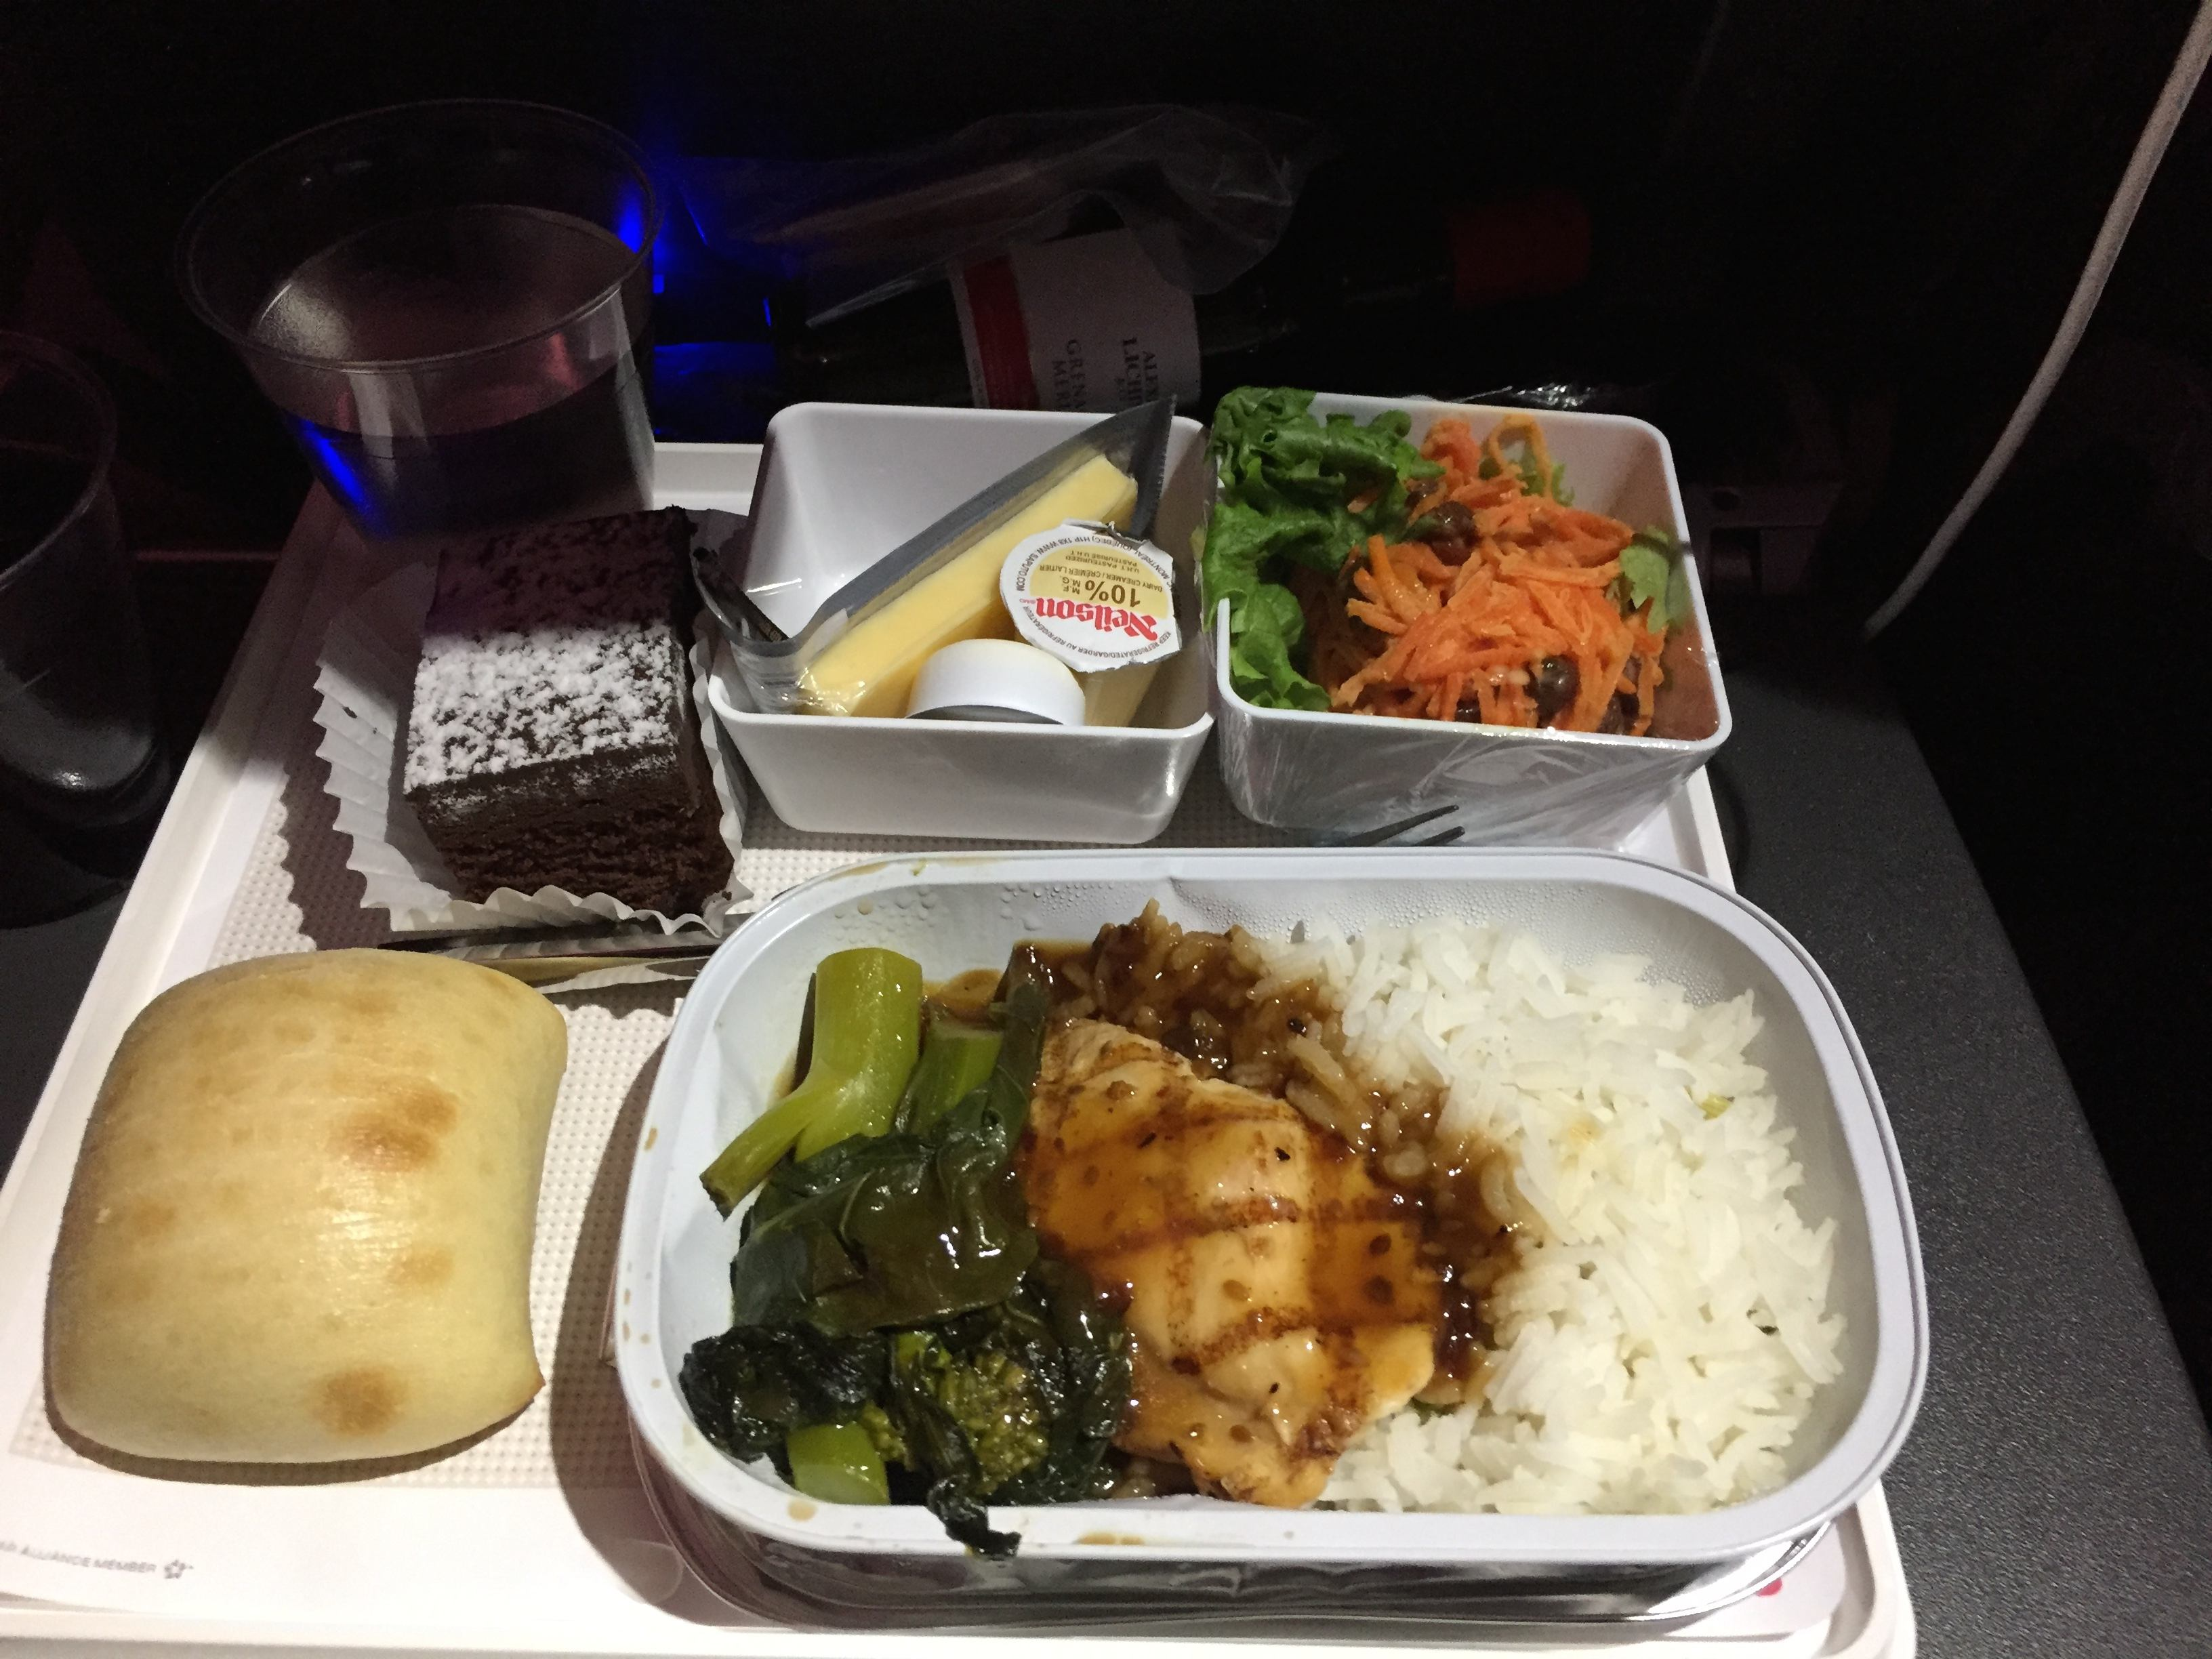 Swiss Airlines dinner